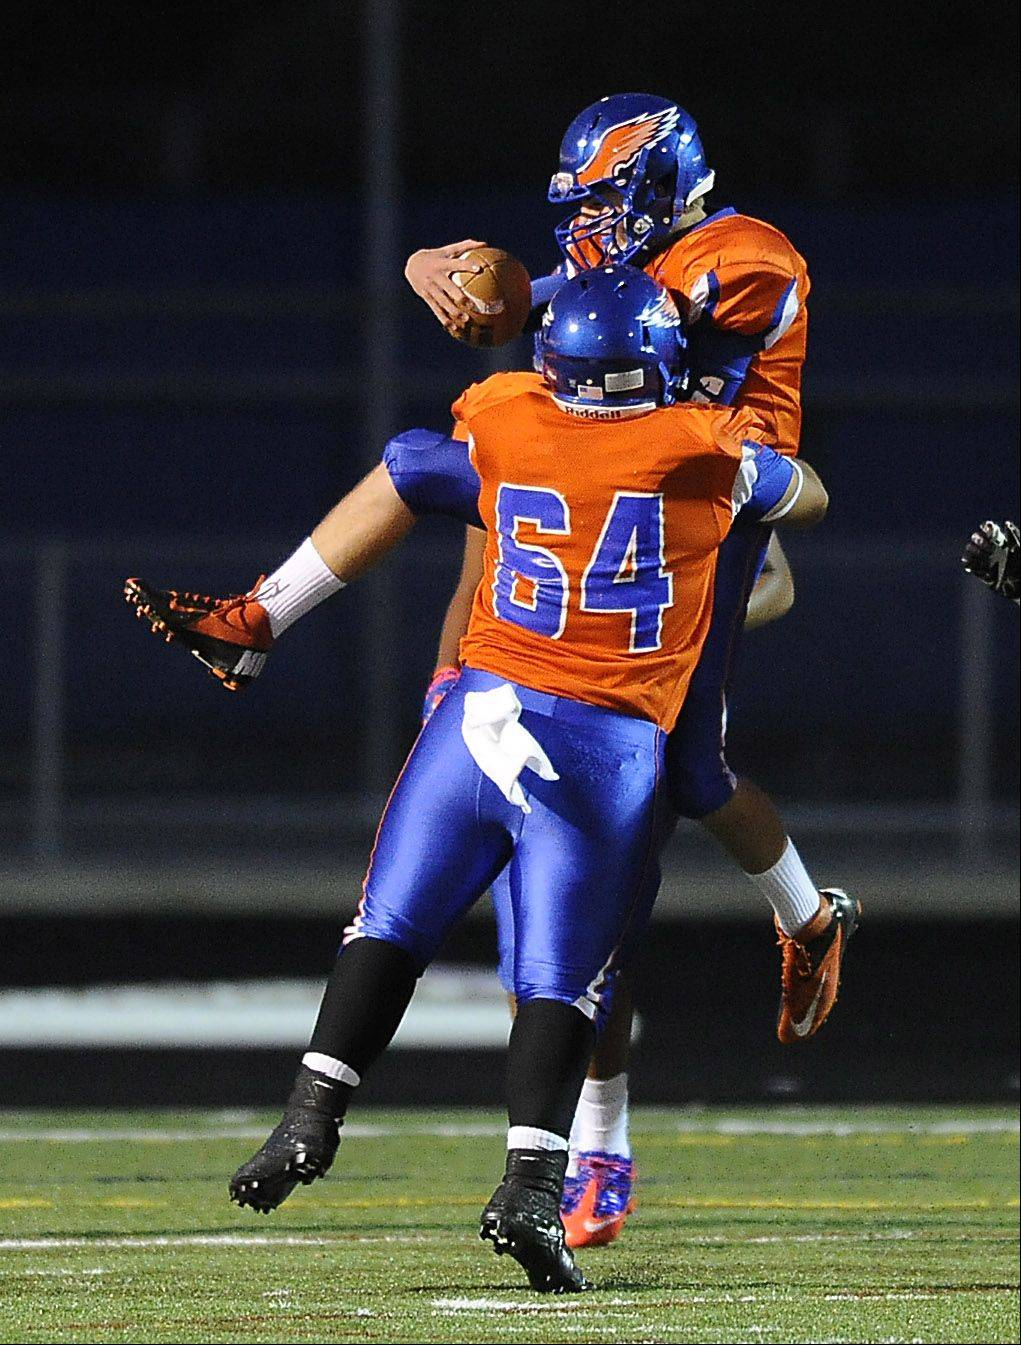 Hoffman Estates' Jeffery Mayes jumps into the arms of his teammate Baldemar Camacho after running a 77-yard touchdown run in the first quarter.